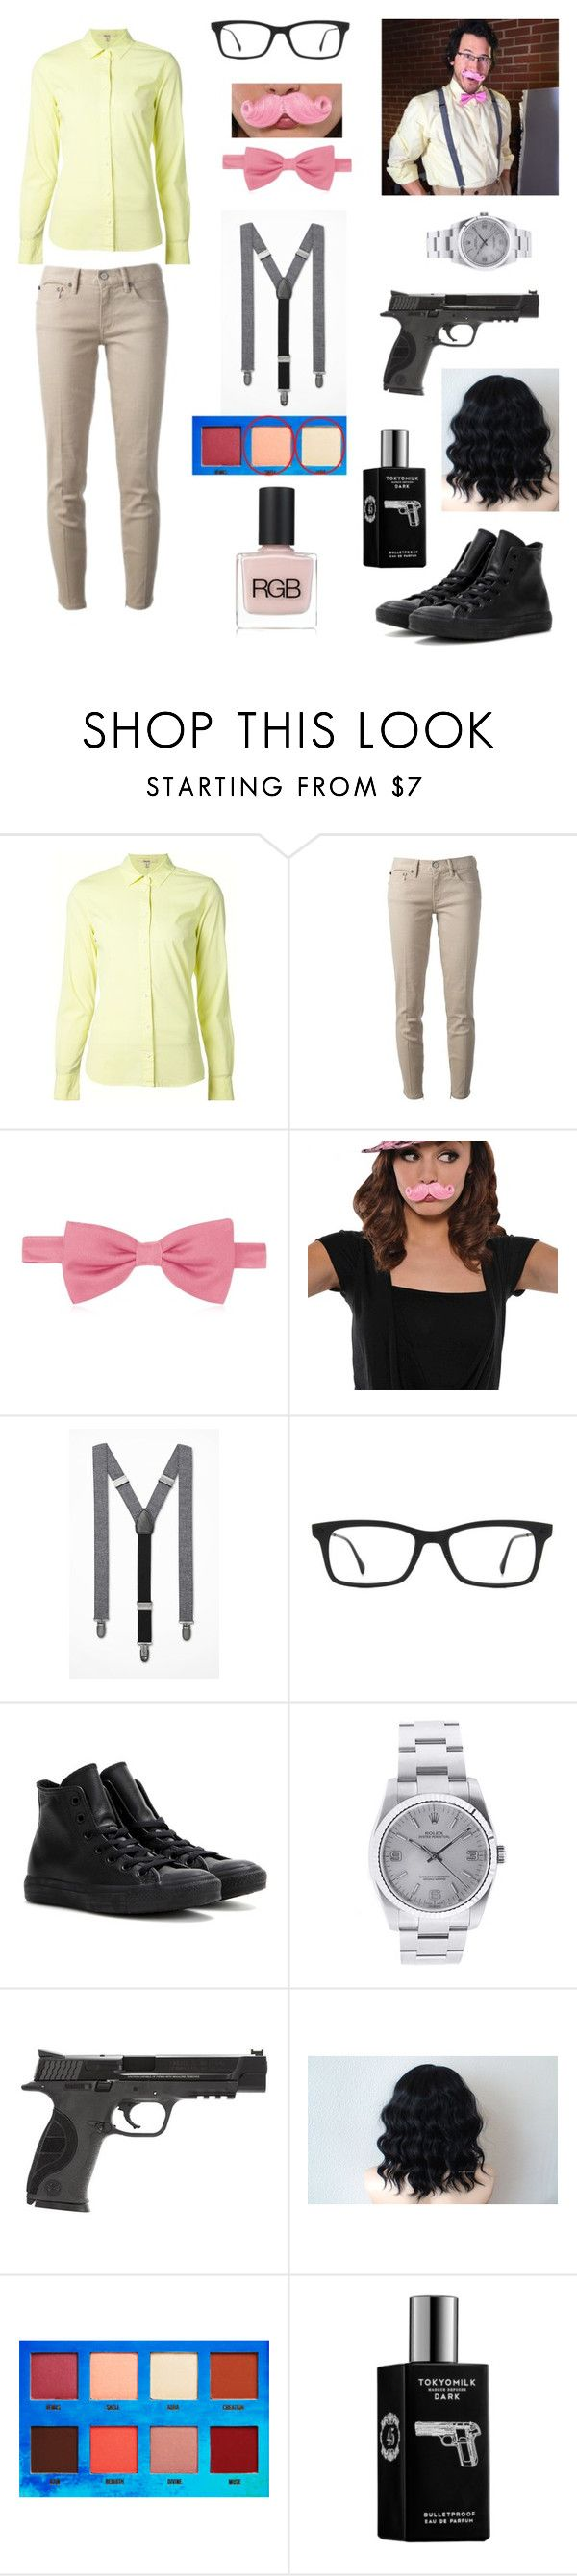 """Wilford Warfstache look ♡"" by sweetserialkiller-394 ❤ liked on Polyvore featuring J Brand, Tory Burch, Forzieri, Express, Ray-Ban, Converse, Rolex, Smith & Wesson, Lime Crime and TokyoMilk"